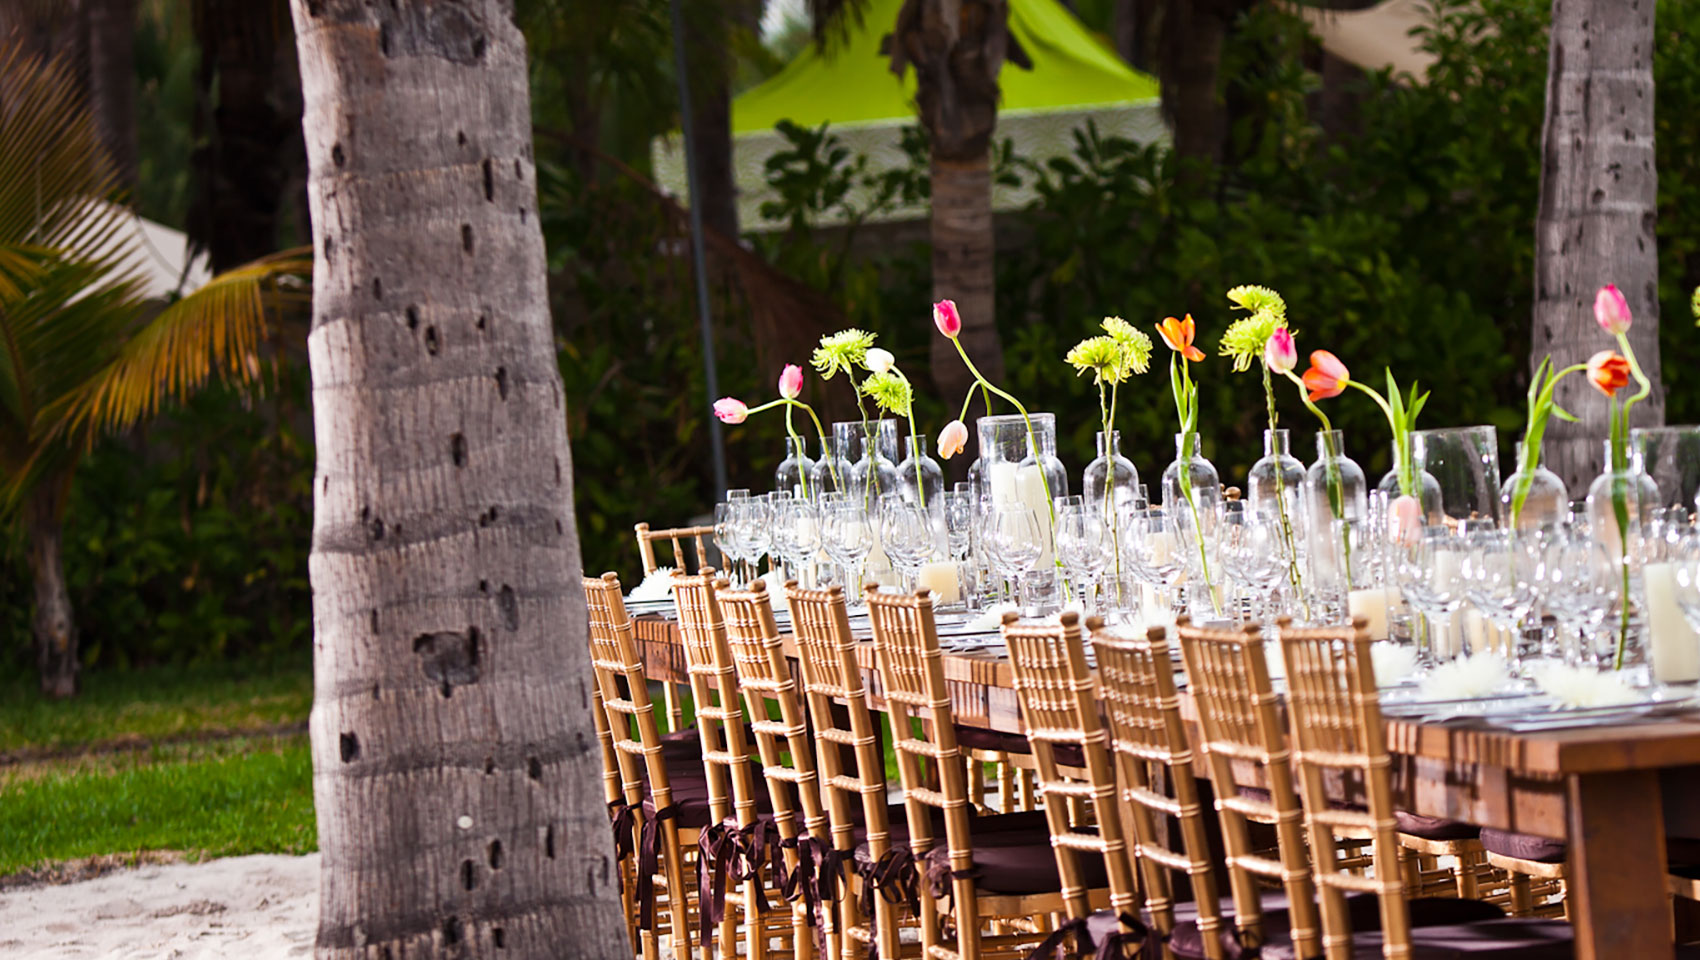 Miami Wedding Venues Kimpton Surfcomber Hotel a Boutique Hotel